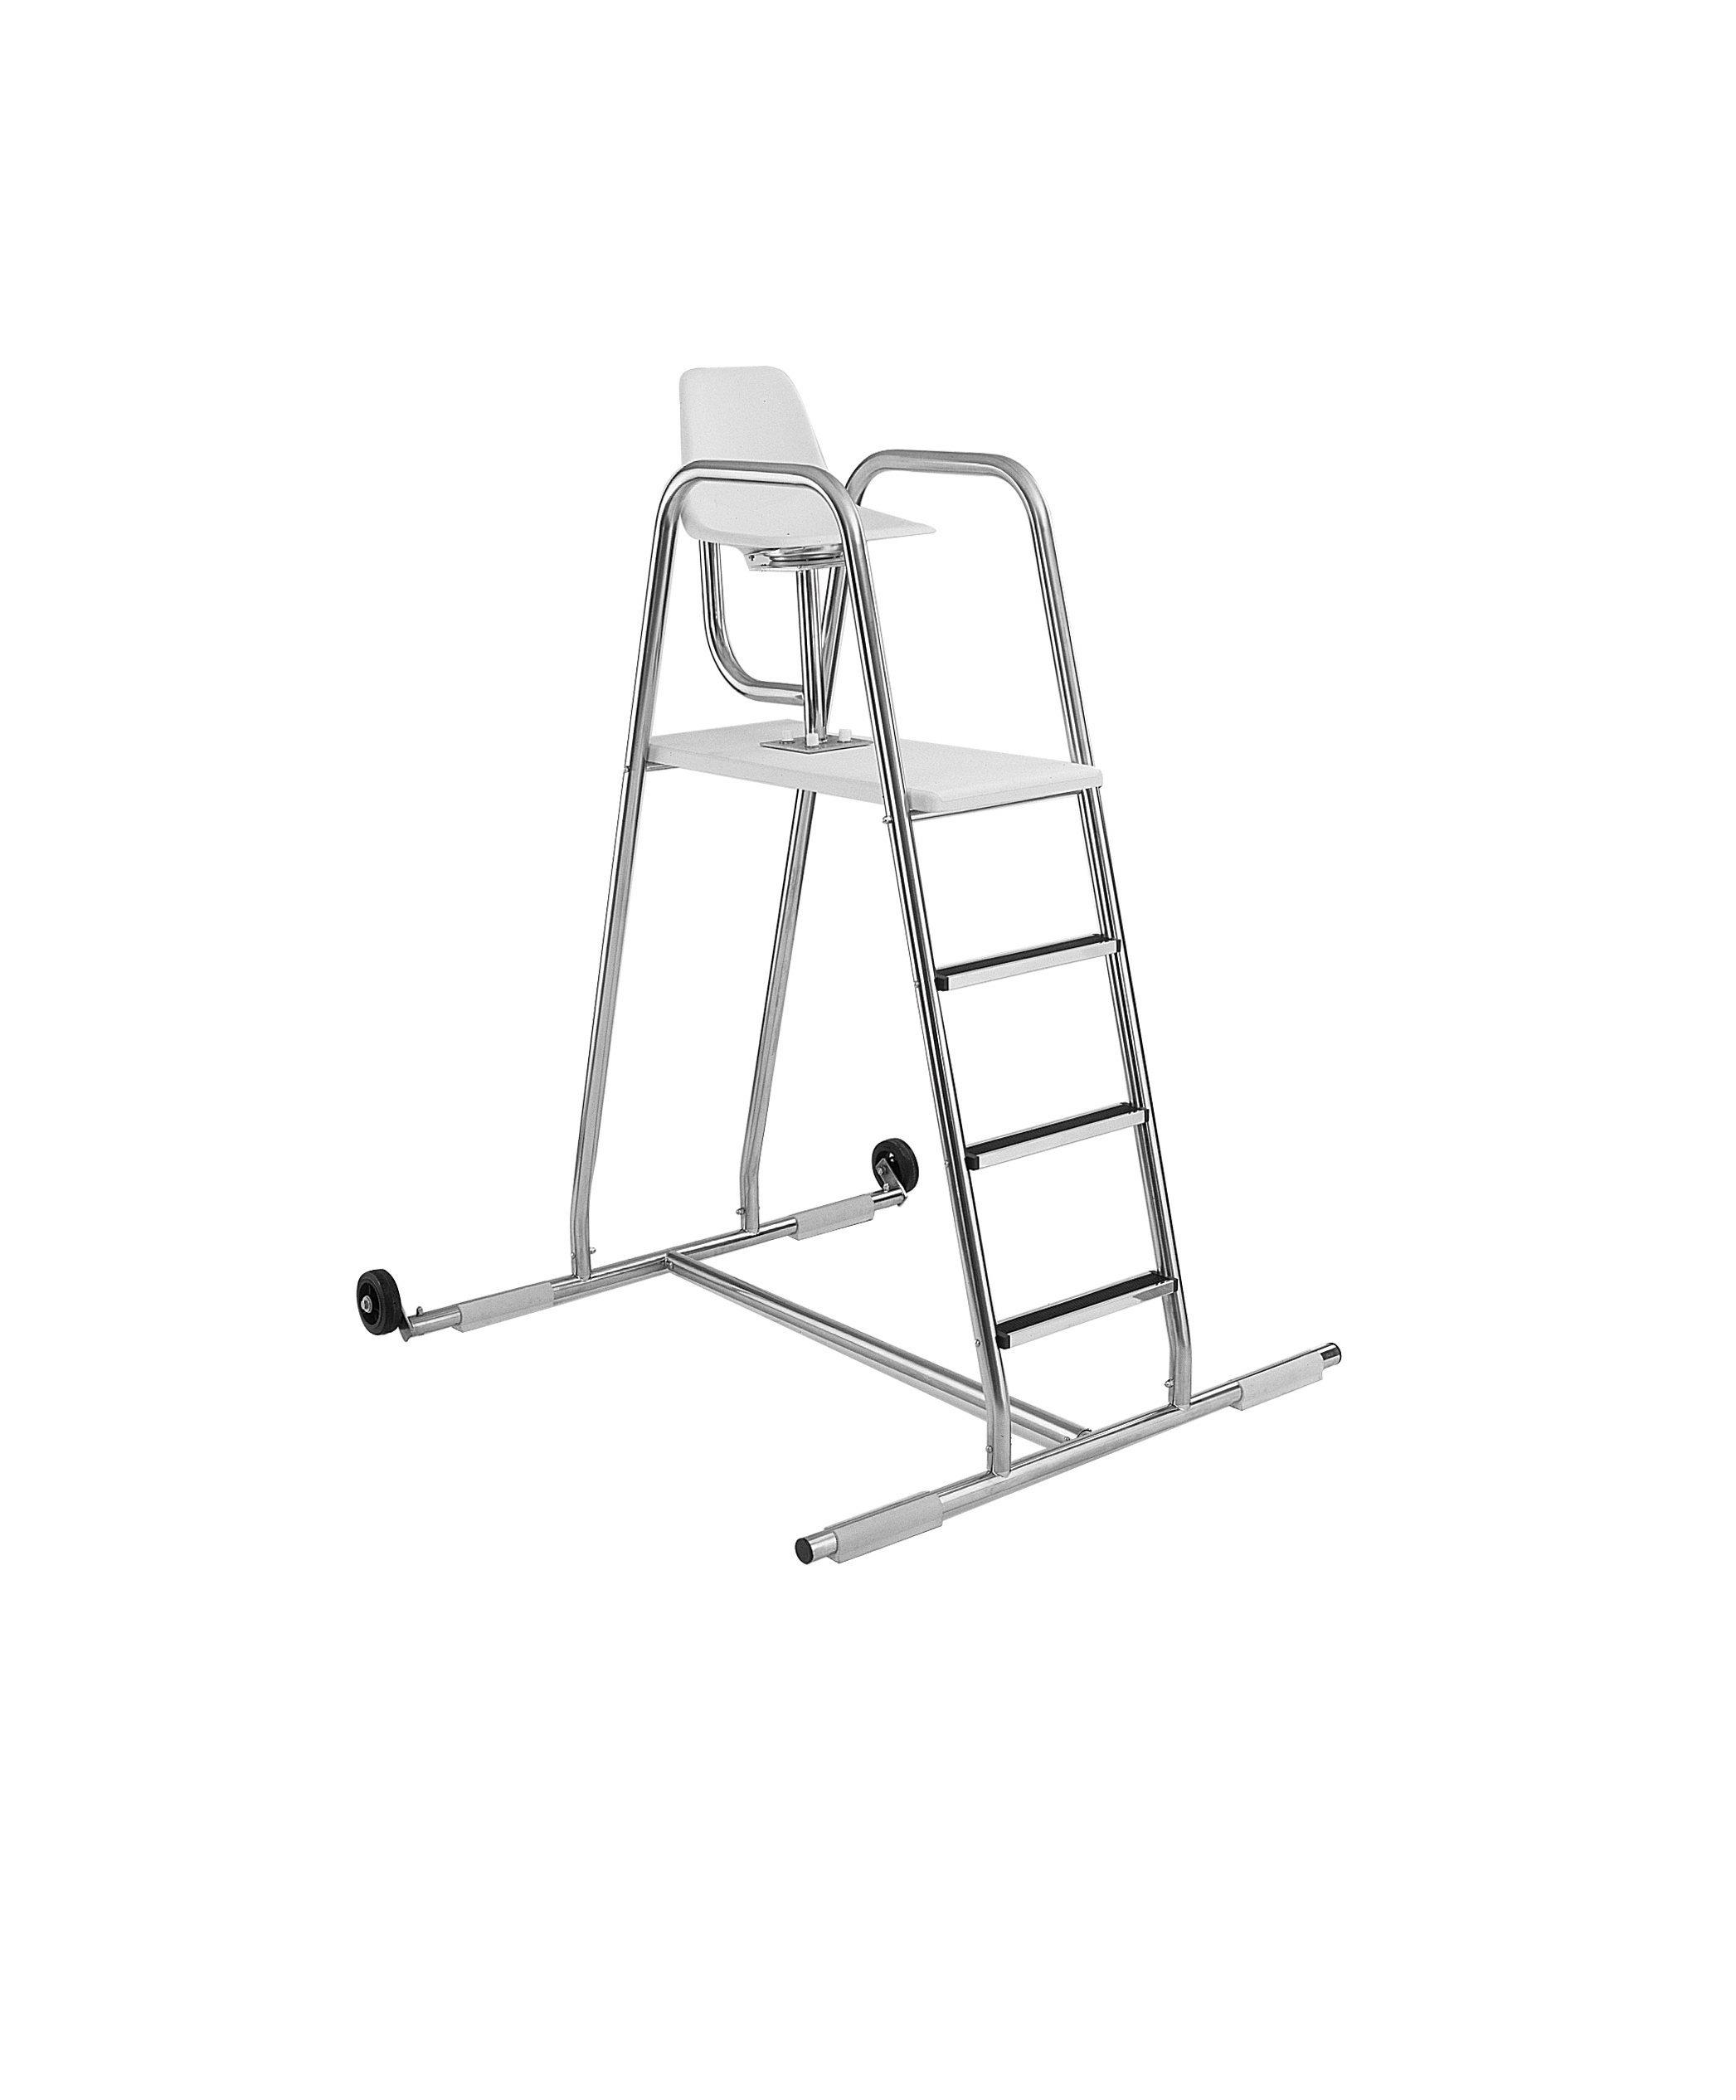 PLS 204 Standard Lifeguard Chair S R Smith Products